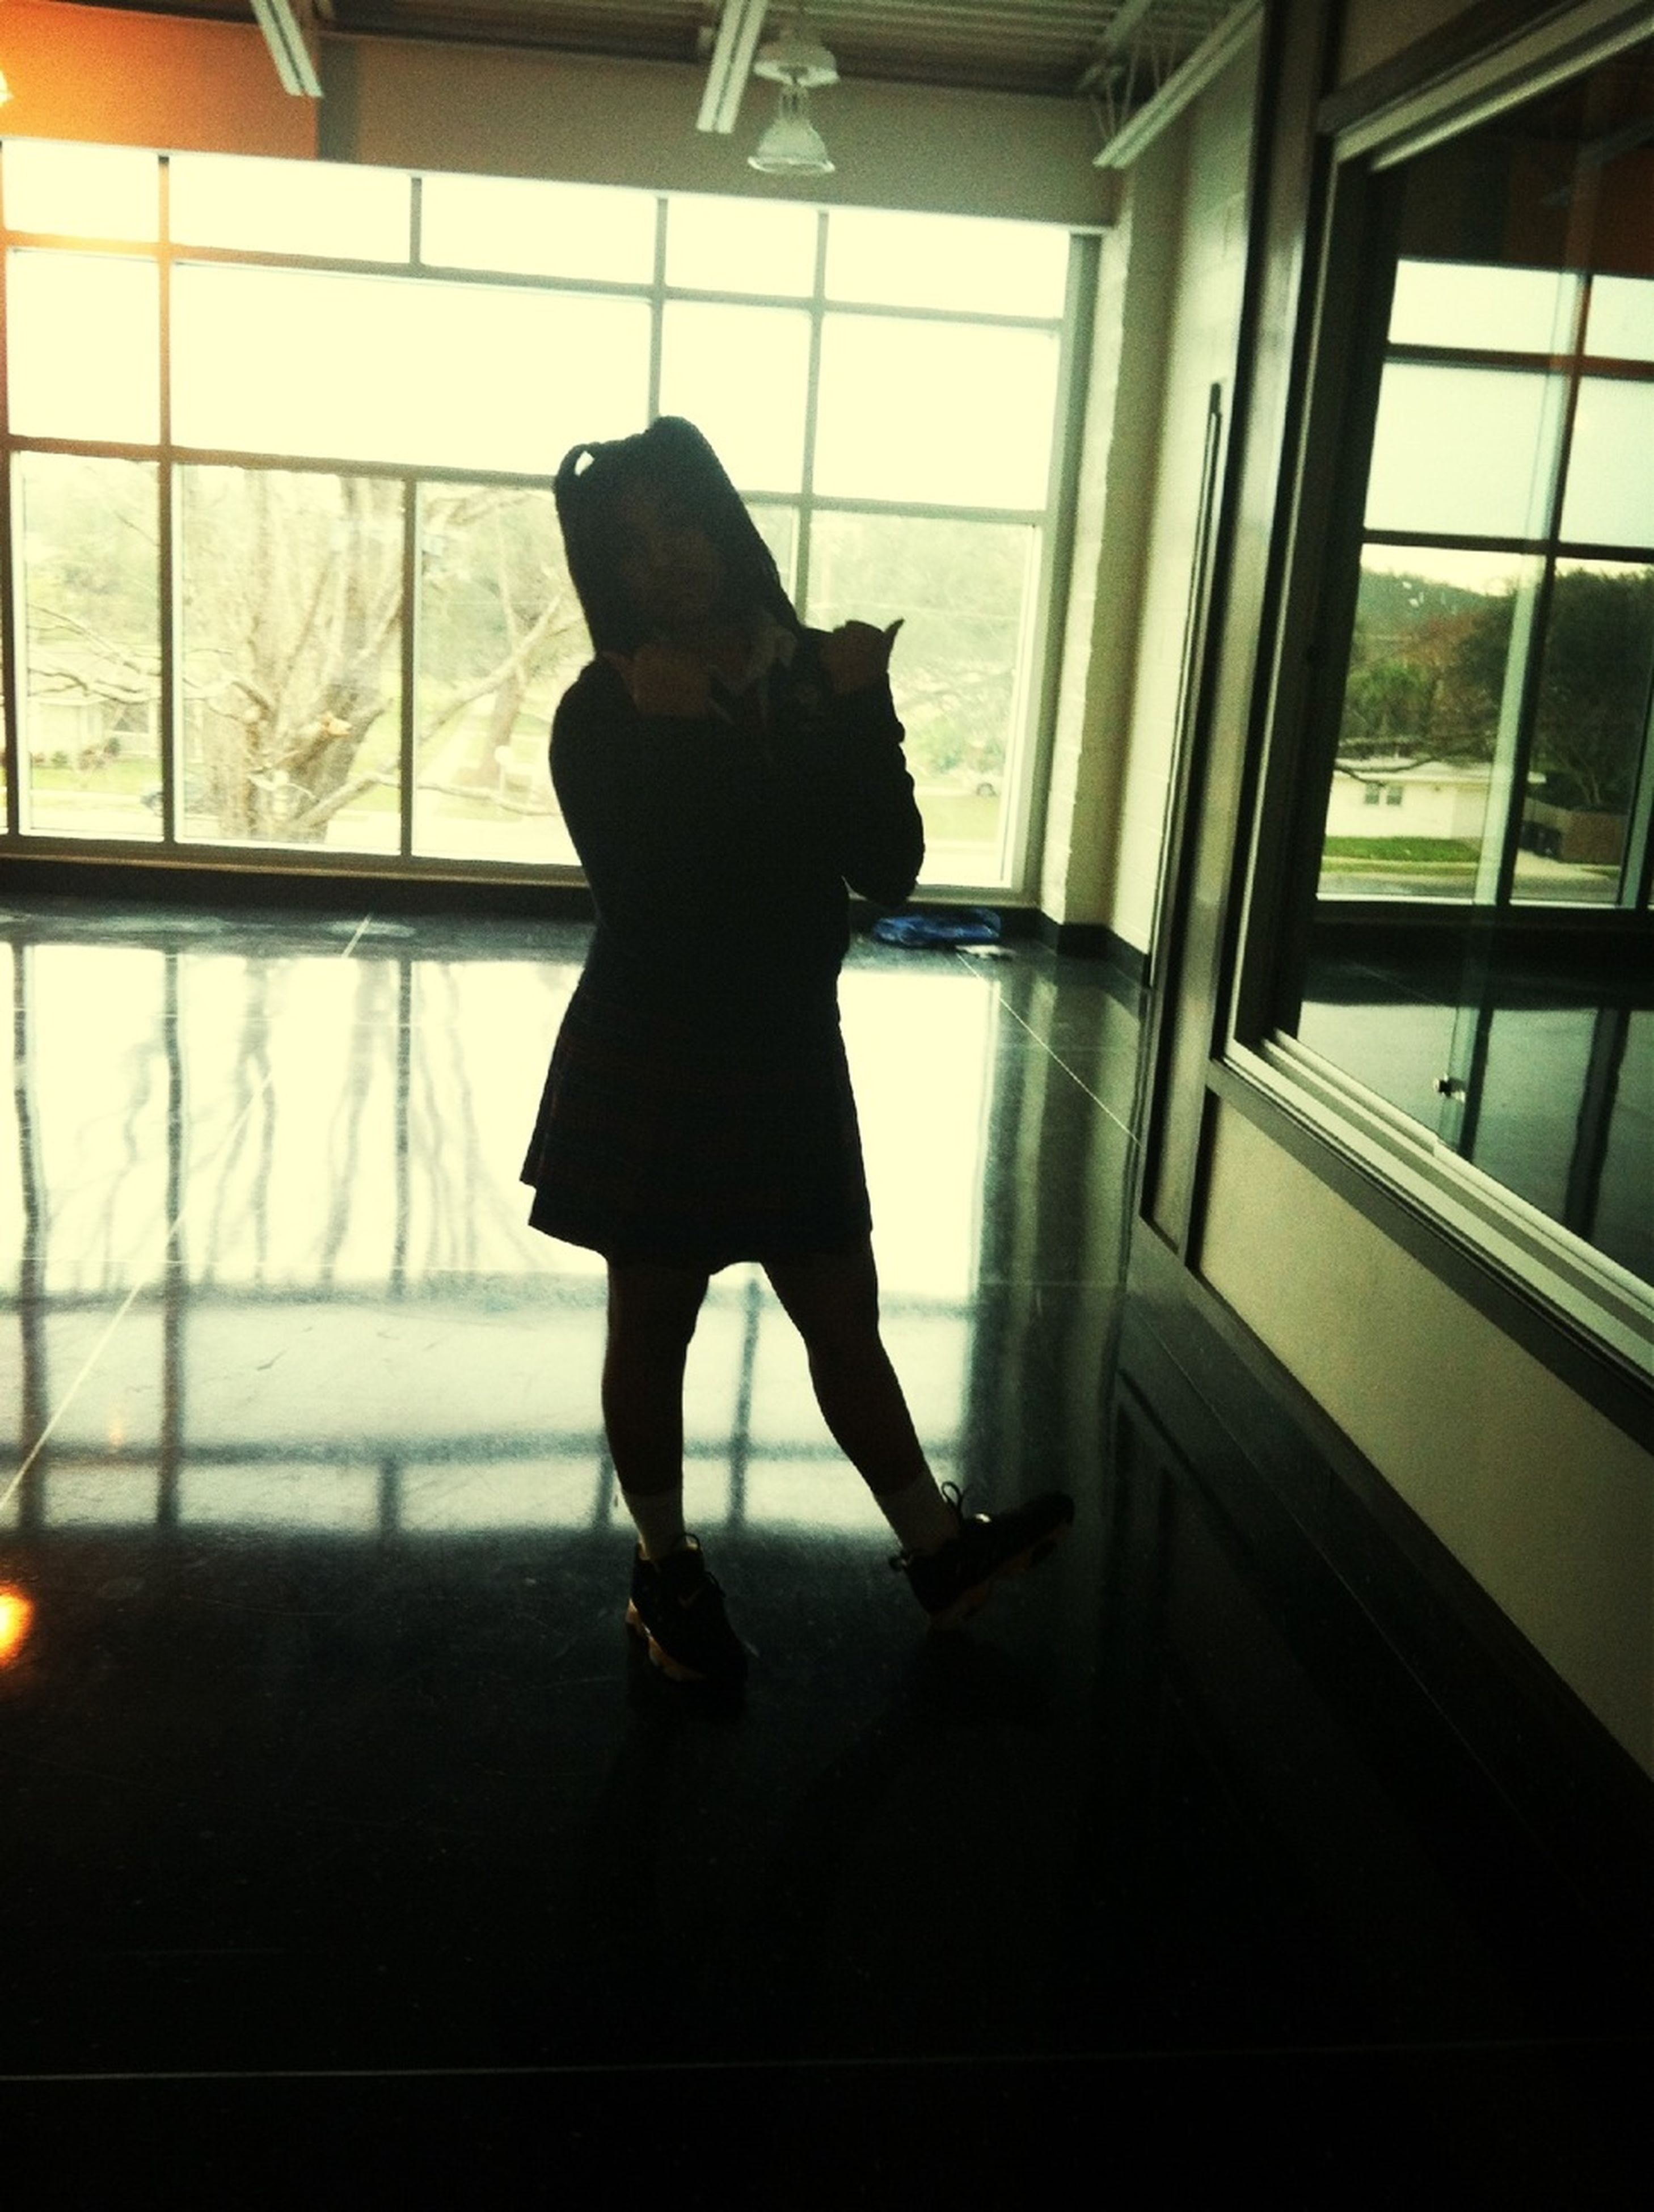 indoors, window, full length, glass - material, transparent, men, silhouette, lifestyles, rear view, standing, person, looking through window, side view, leisure activity, sitting, day, reflection, sunlight